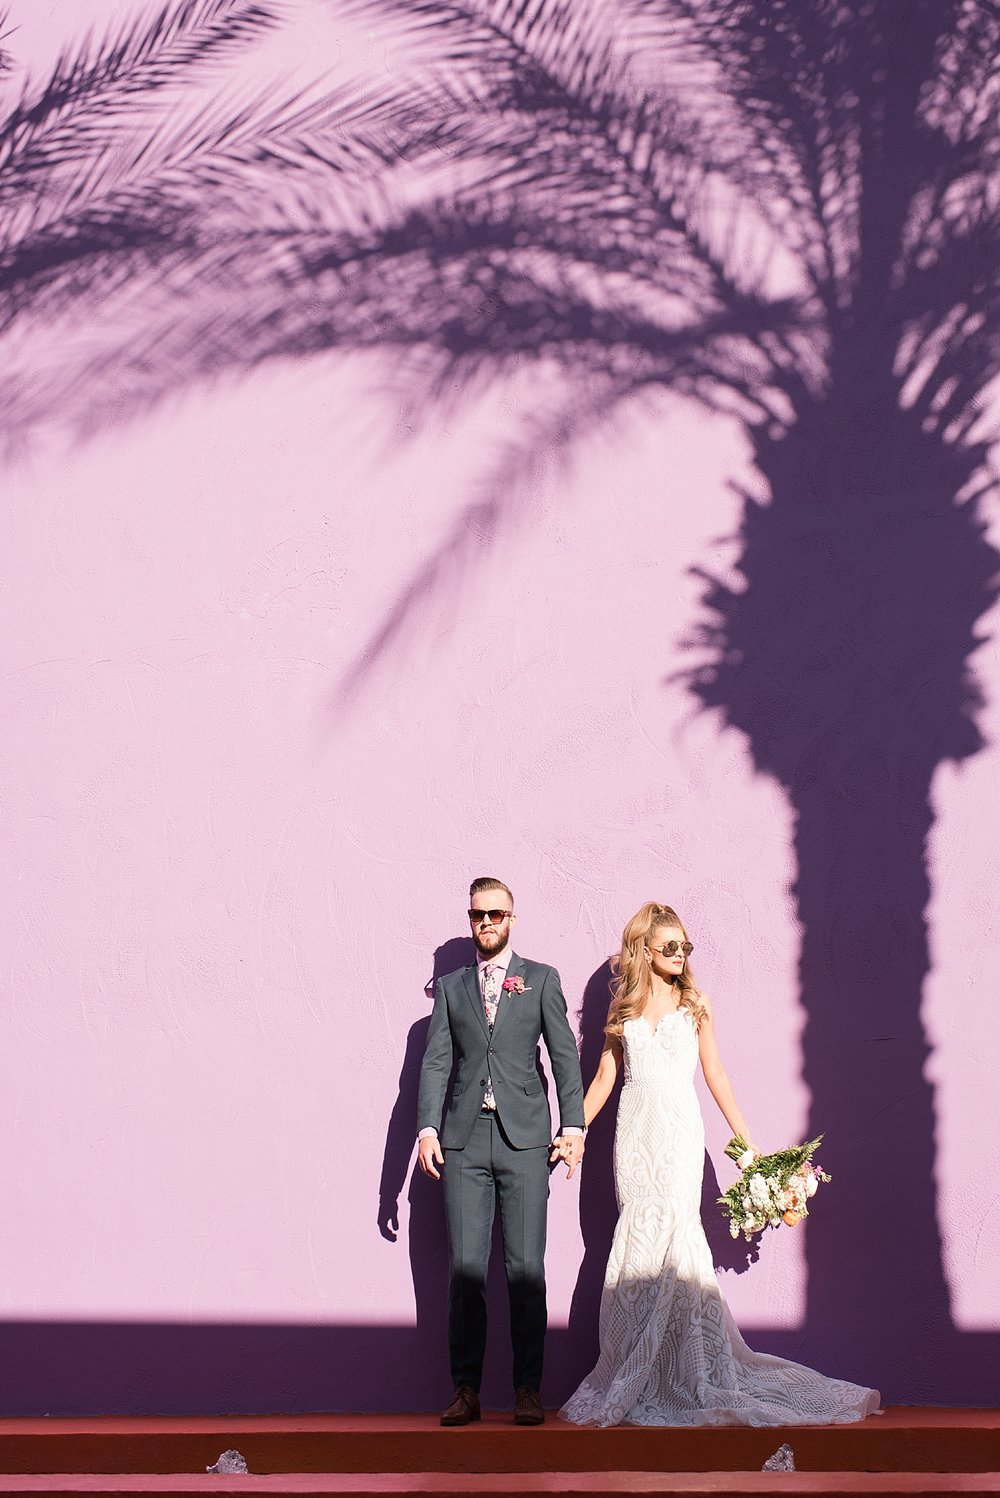 Bride Natalie Meyer wearing a dress by Bella Lily Bridal, with her groom Zach Meyer at The Saguaro Scottsdale's grounds. Hair and makeup done by Makiaj Beauty, and groom's tux provided by Magro Clothing.